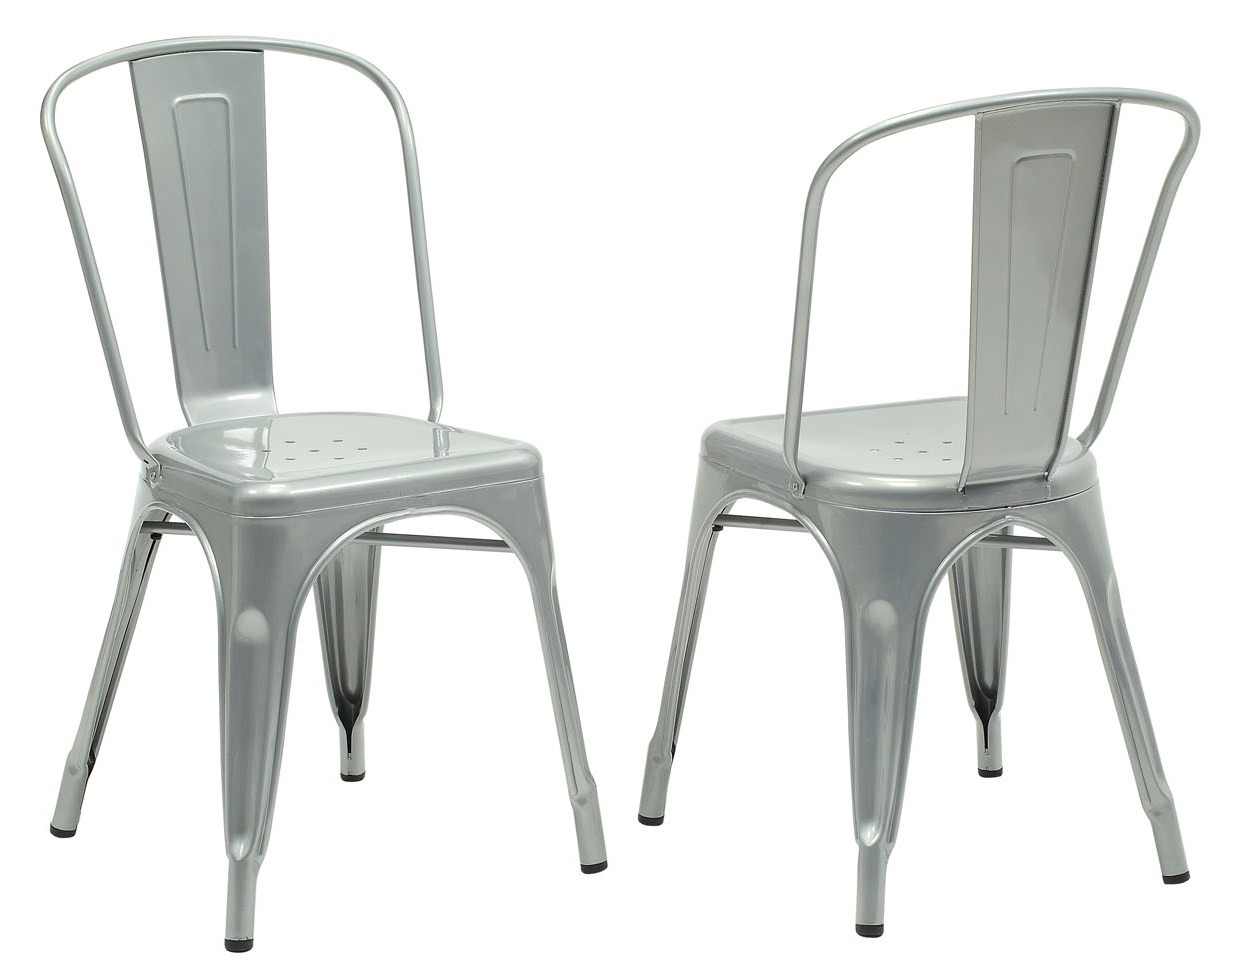 Galvanized Steel Chairs 2412 Silver Galvanized Metal Side Chair Set Of 2 From